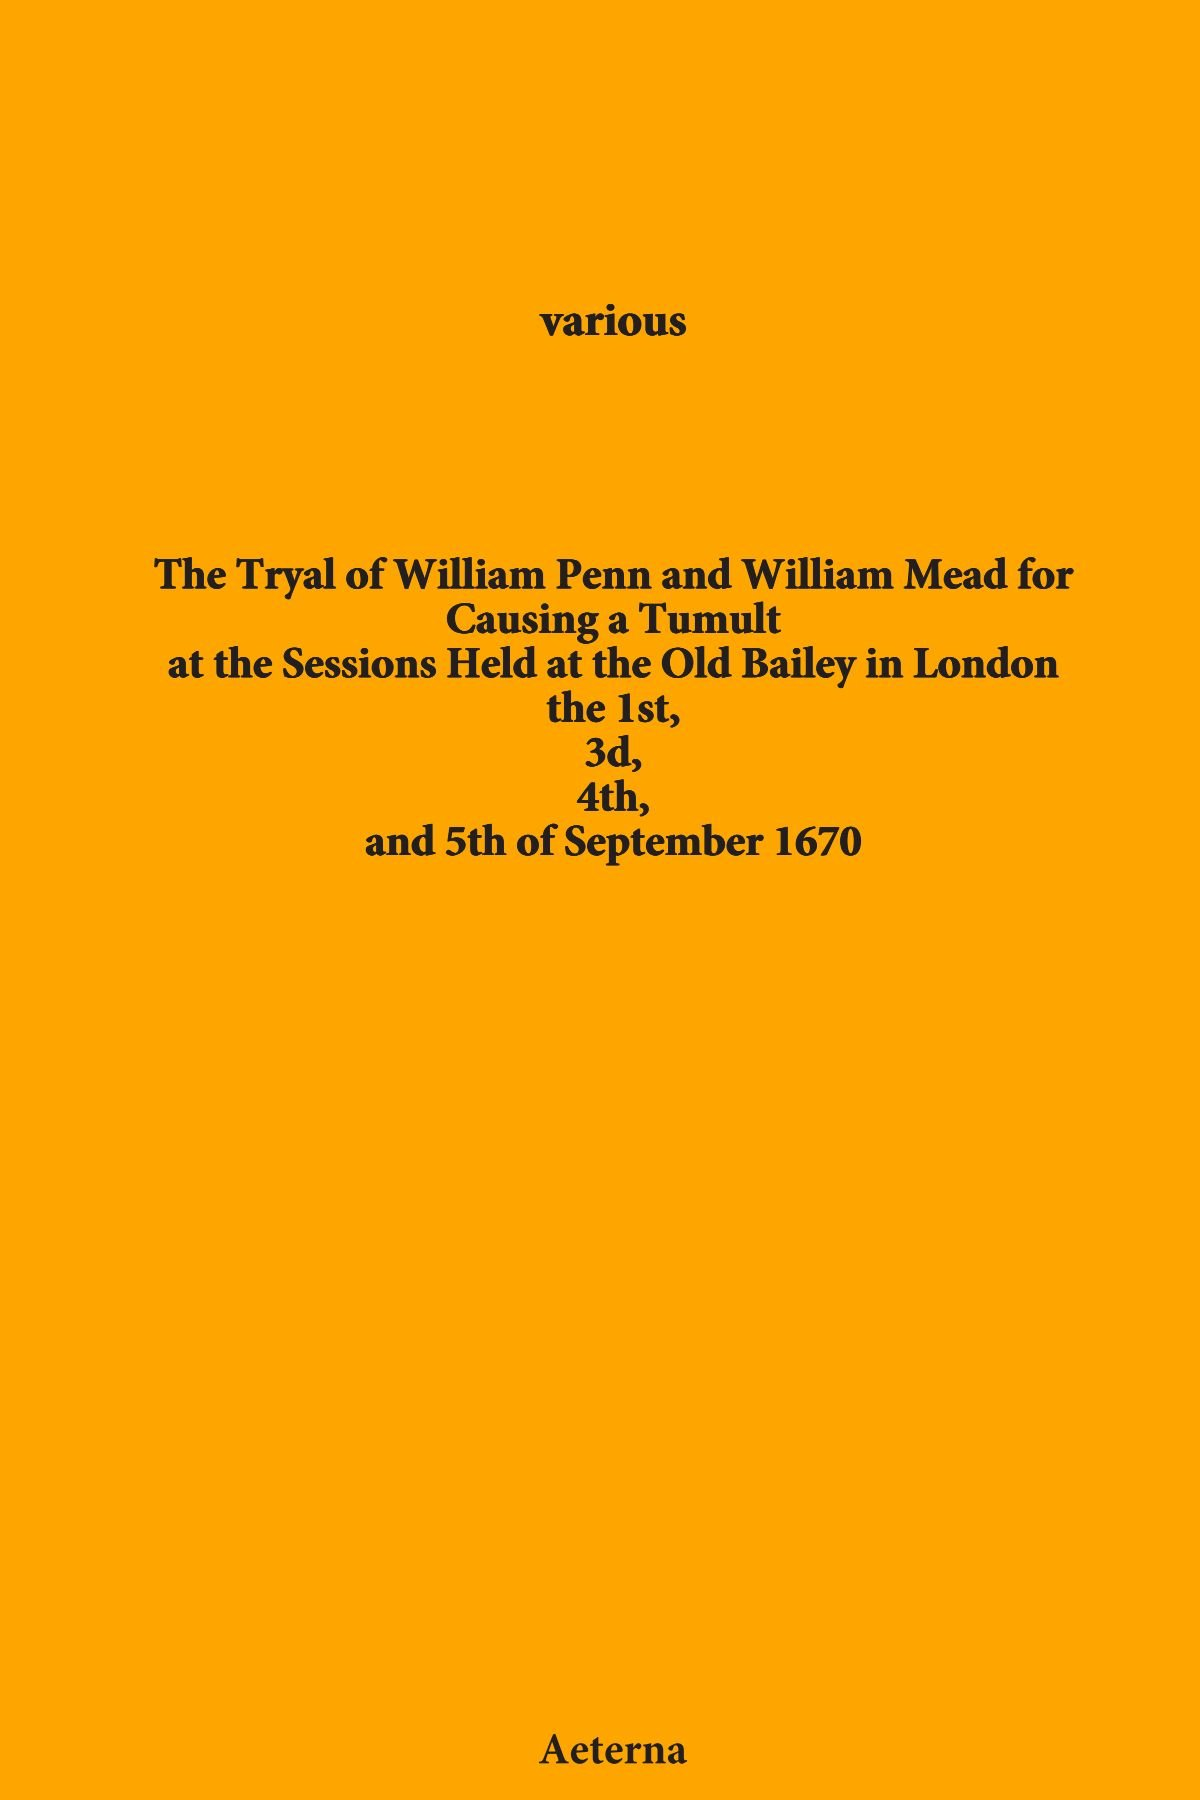 The Tryal of William Penn and William Mead for Causing a Tumult. at the Sessions Held at the Old Bailey in London the 1st, 3d, 4th, and 5th of September 1670 PDF